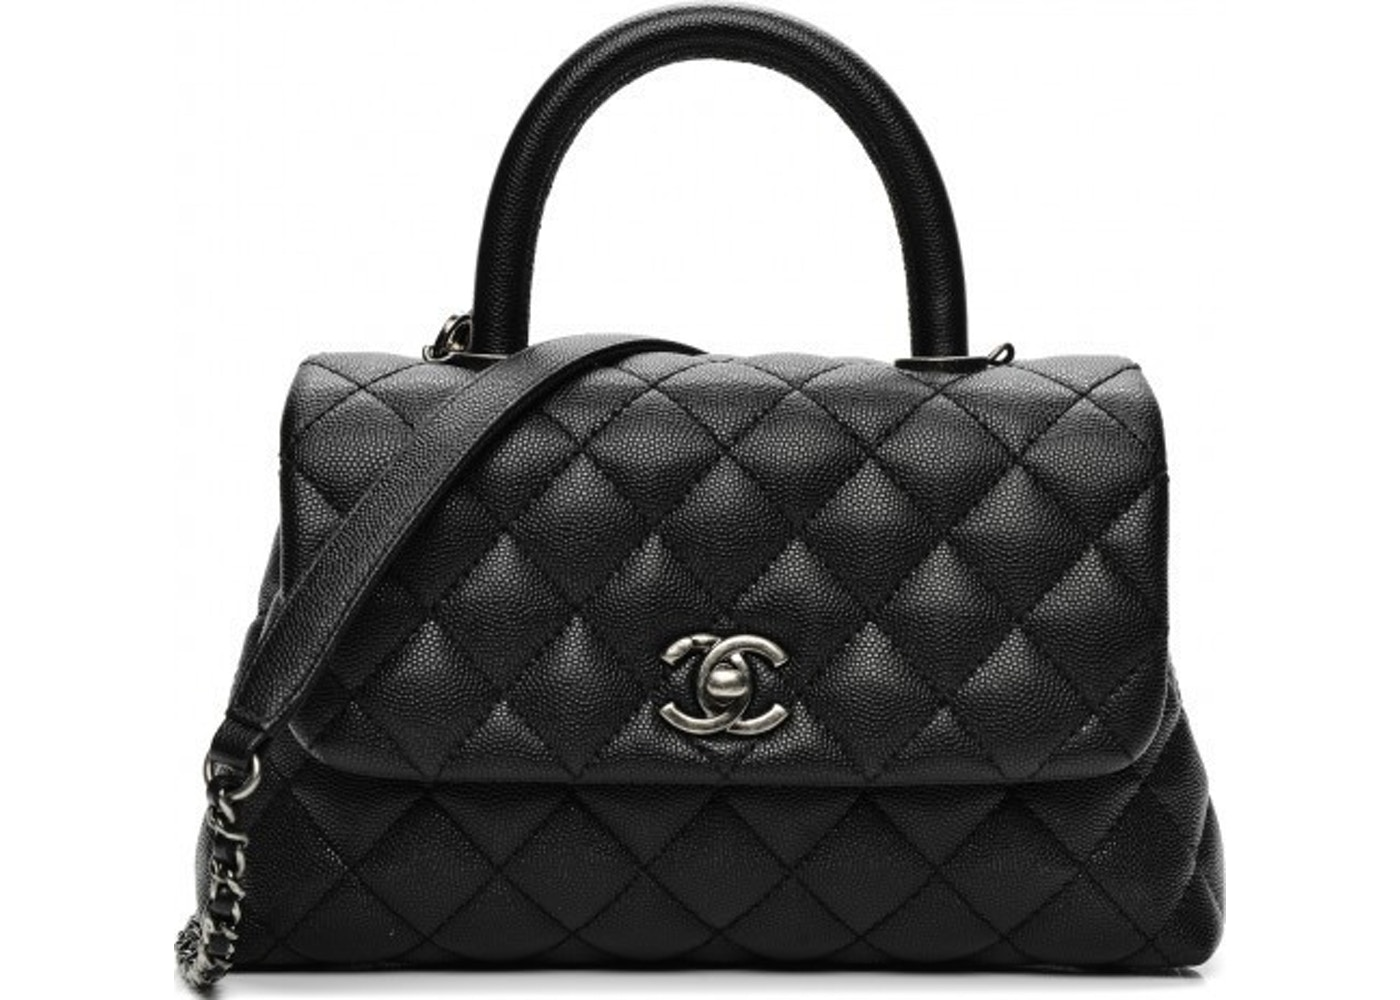 eac744c08fff16 Chanel Coco Handle Bag Quilted Grained Mini Black. Quilted Grained Mini  Black